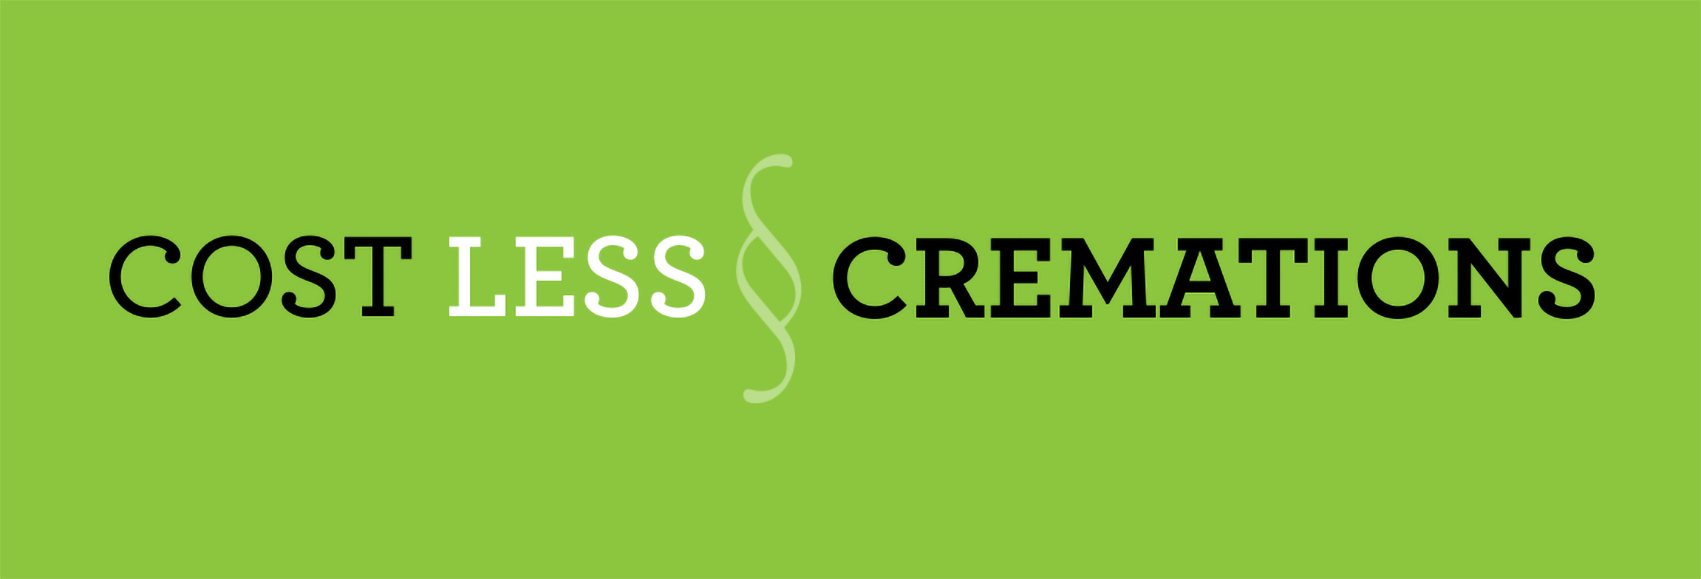 Cost Less Cremations Logo